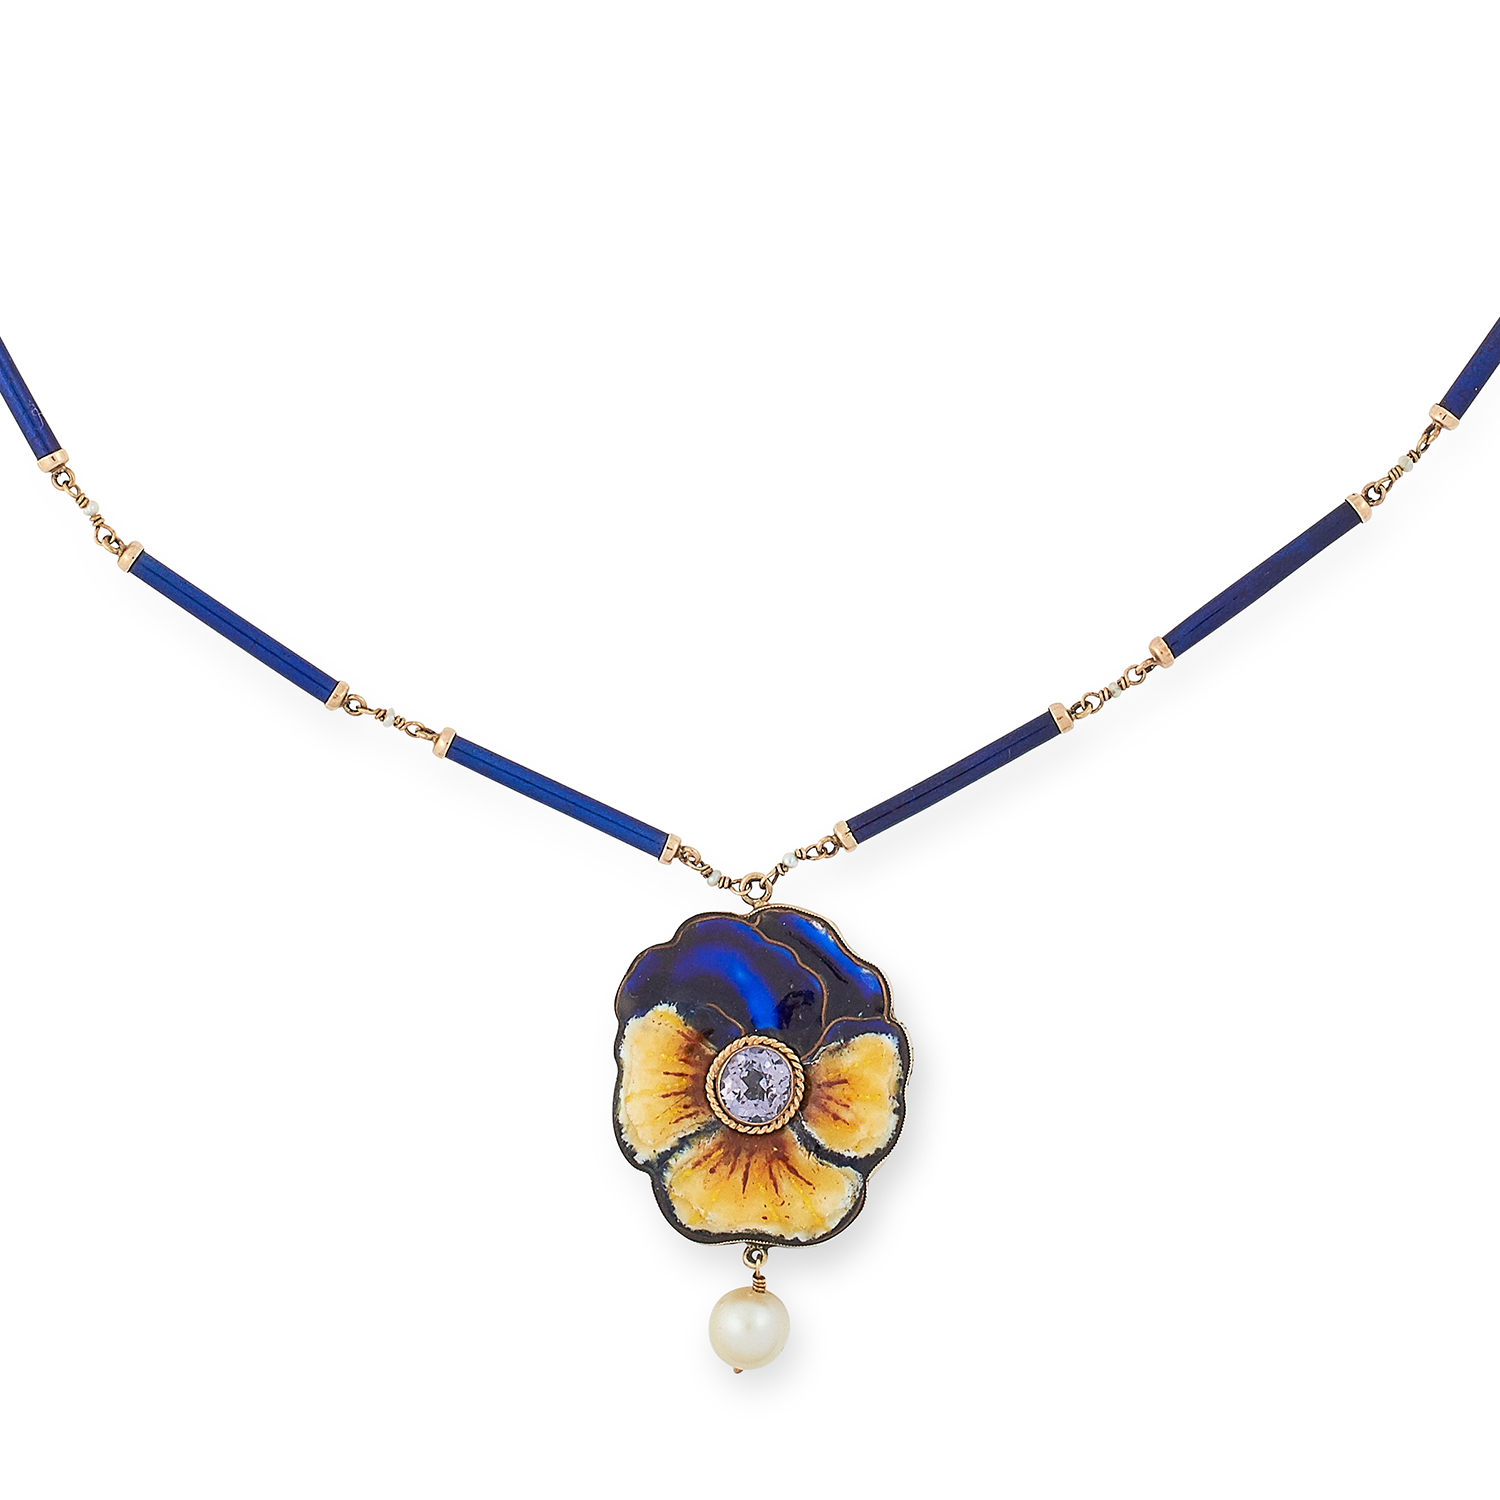 ANTIQUE ENAMELLED PANSY NECKLACE set with a purple faceted stone and a pearl, 43.5cm, 11g. - Bild 2 aus 2